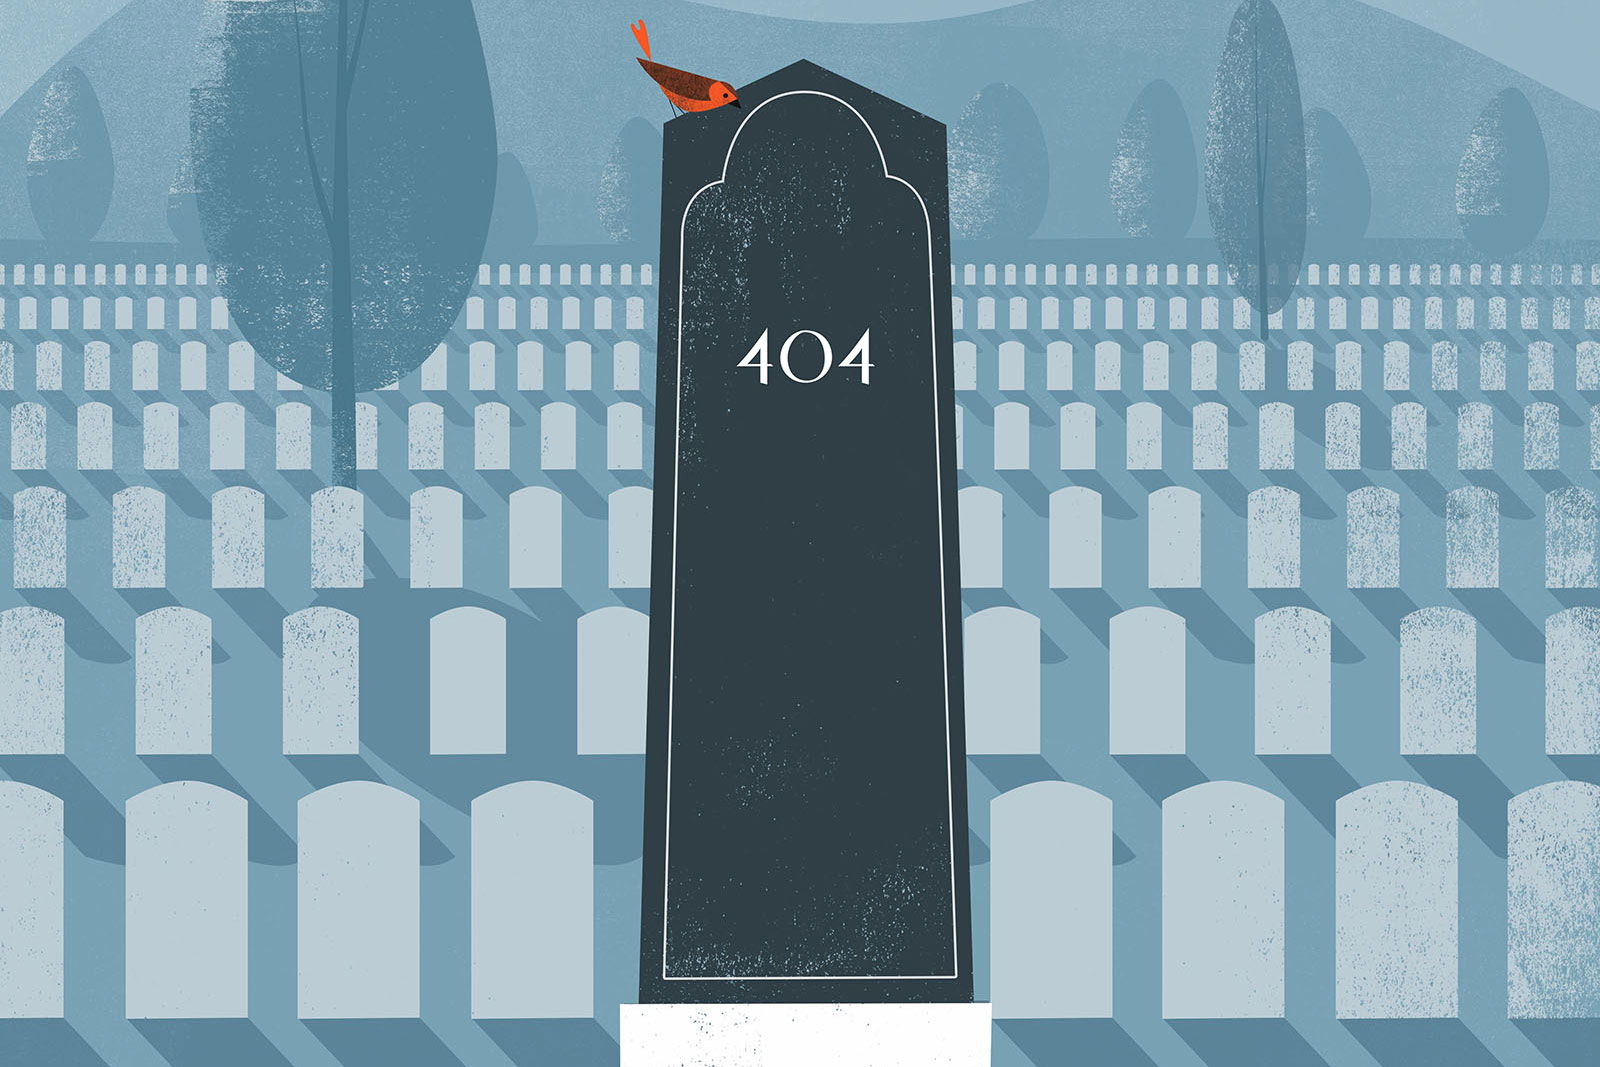 Legacy illustration with tombstone in graveyard, by Tom Froese